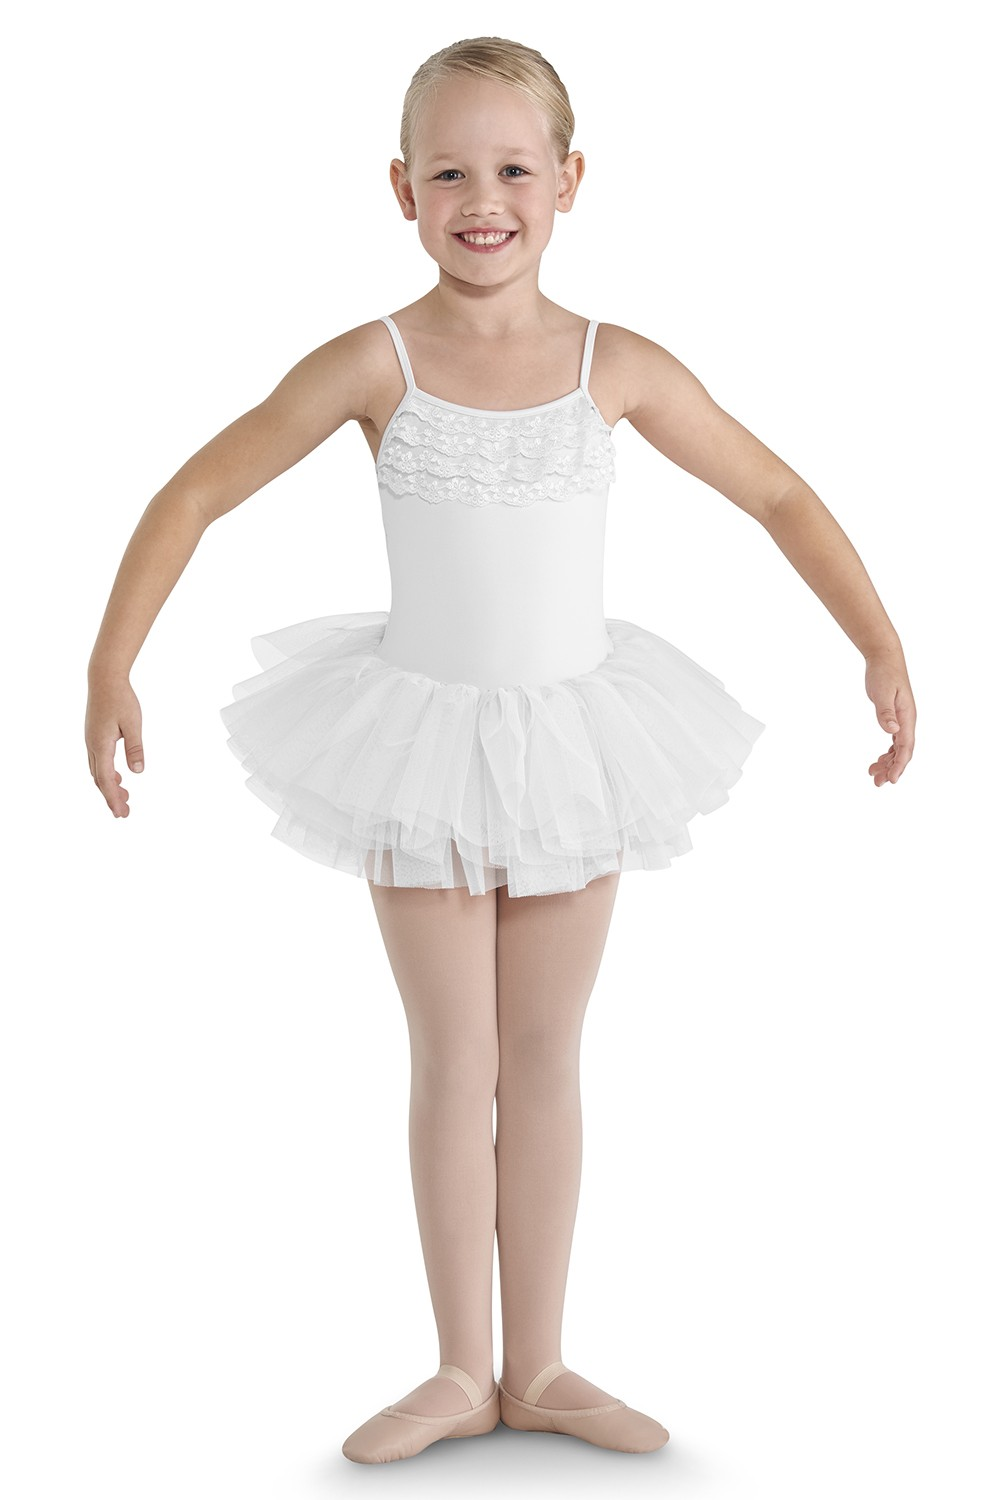 Taruna Children's Dance Leotards